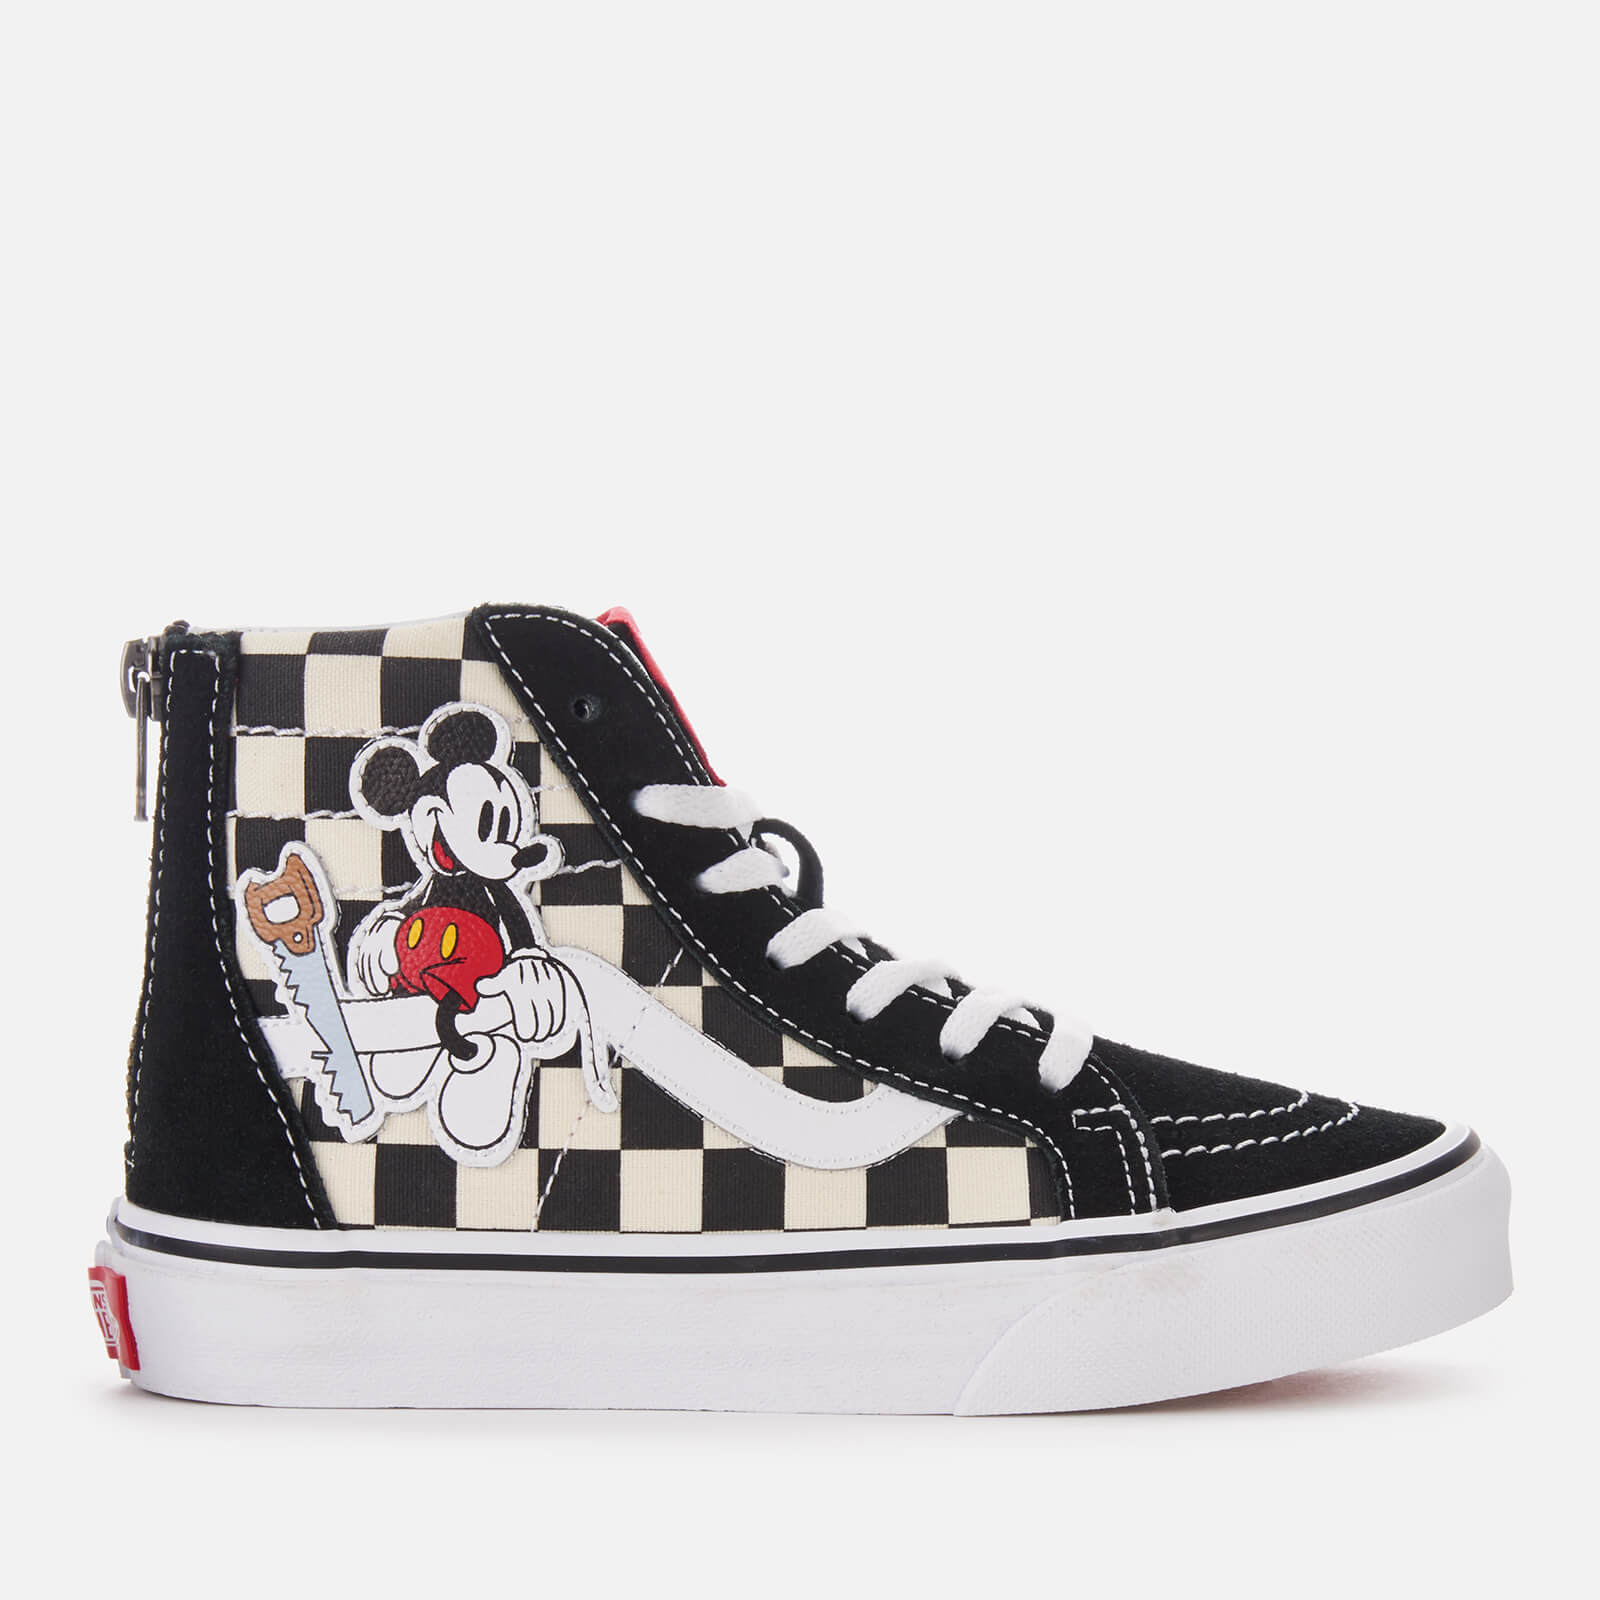 a6f5fa94c1 Vans Kid s Disney Mickey Sk8-Hi Zip Trainers - Checkerboard Junior Clothing